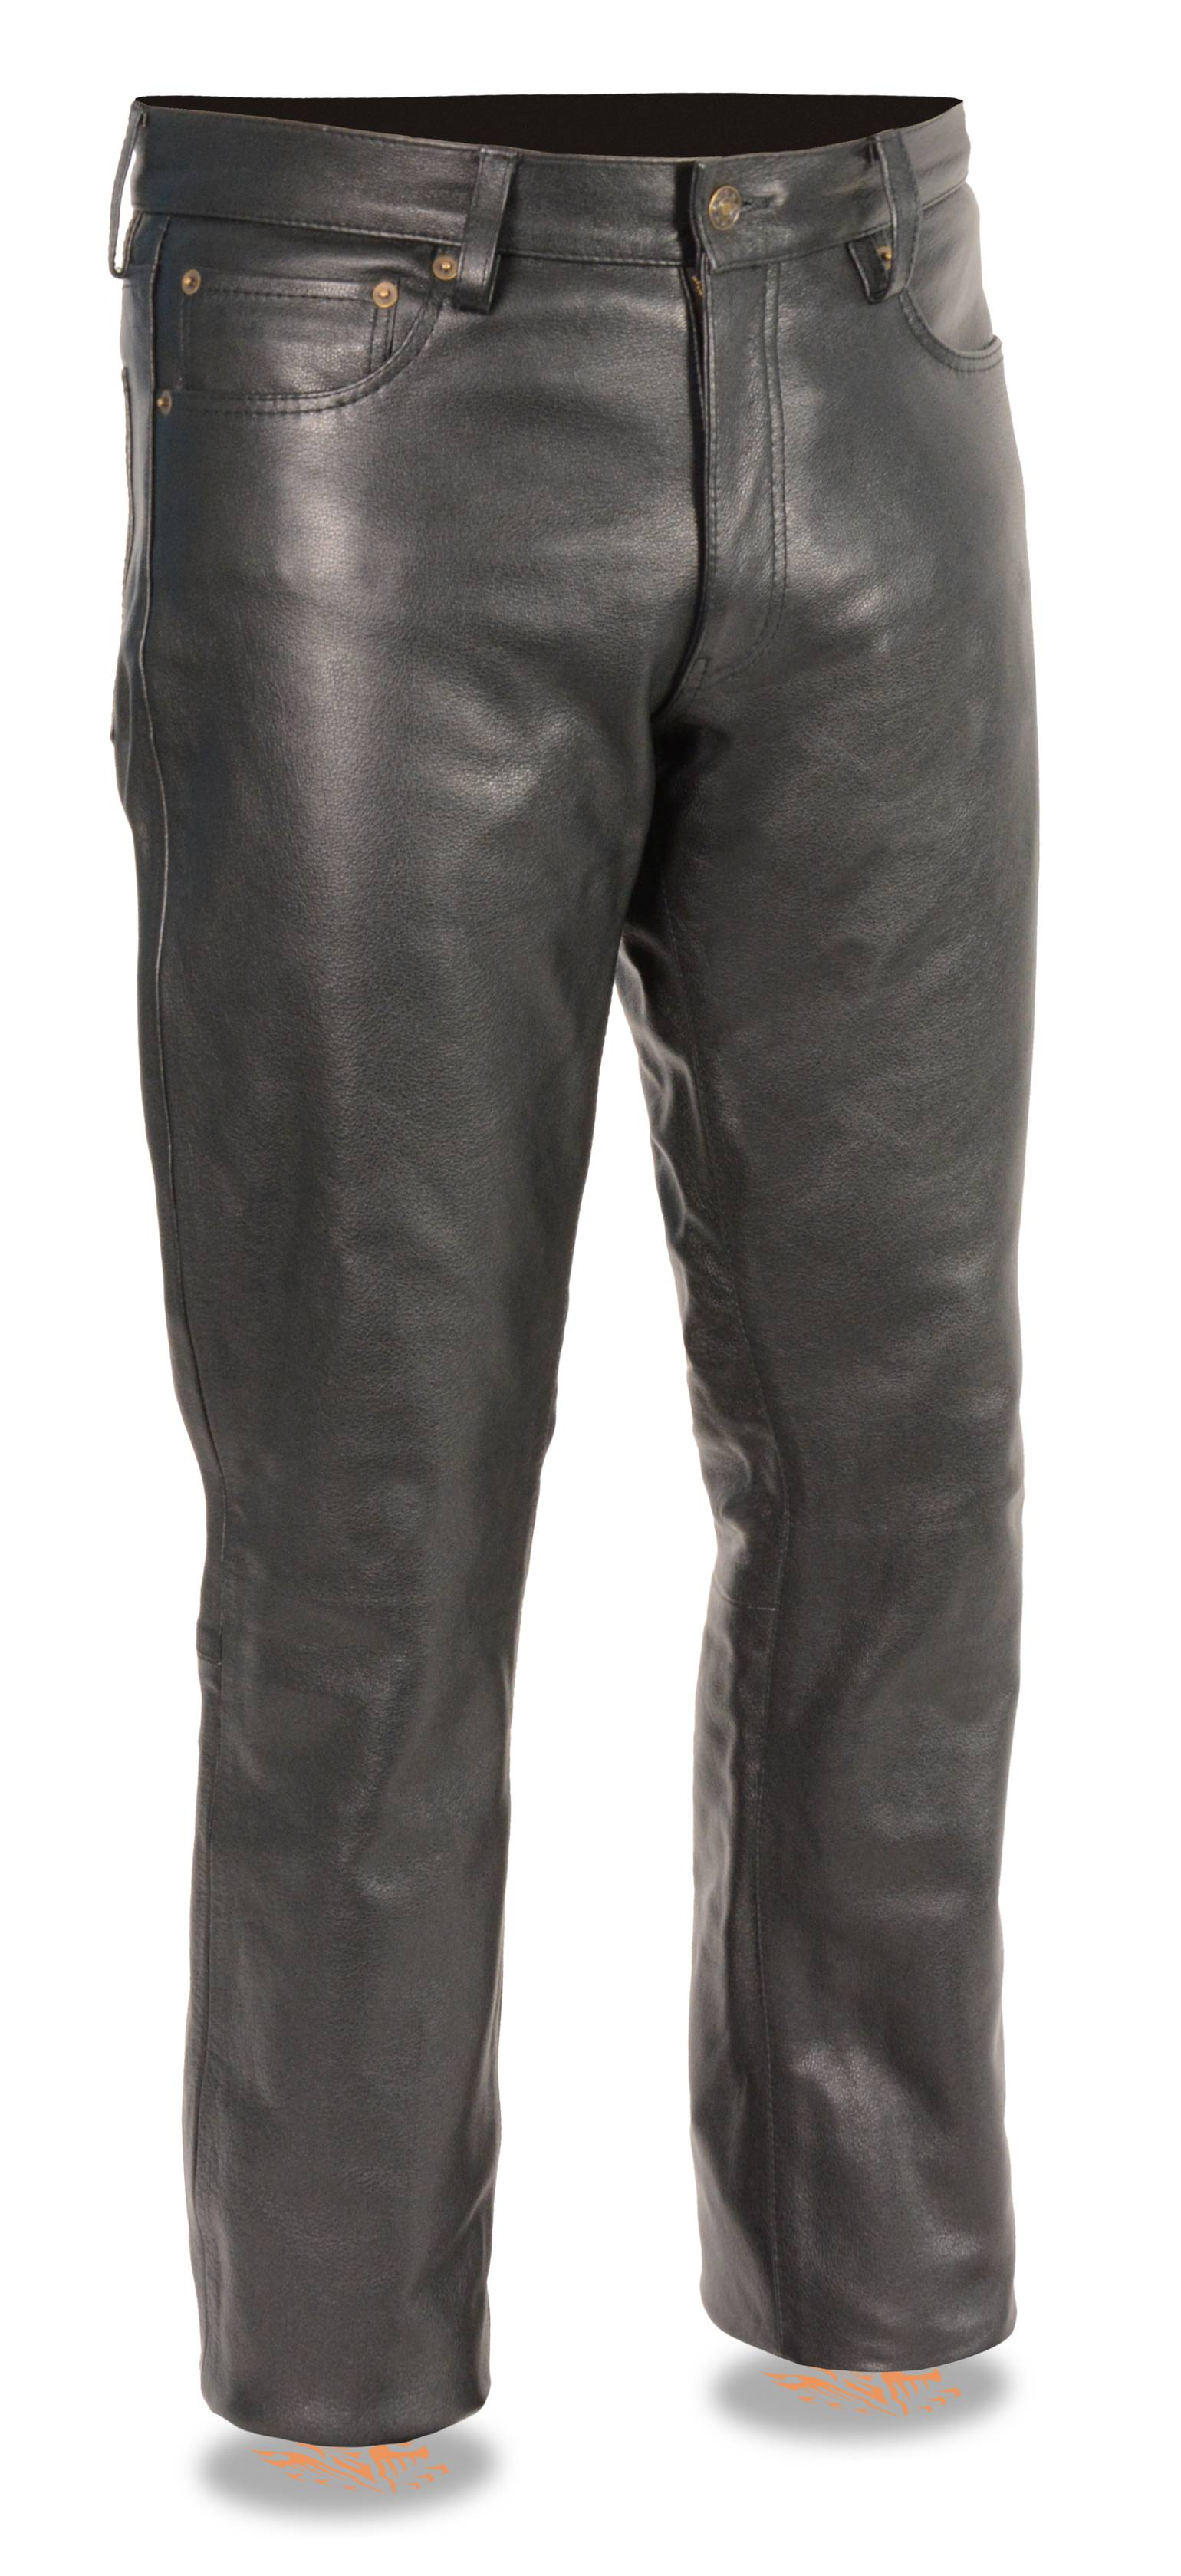 We offer leather motorcycle pants, reinforced, breathable jeans for men and women, insulated pants, and more. Let J&P Cycles complete your motorcycle wardrobe with our selection of motorcycle t-shirts, jackets, boots and more.